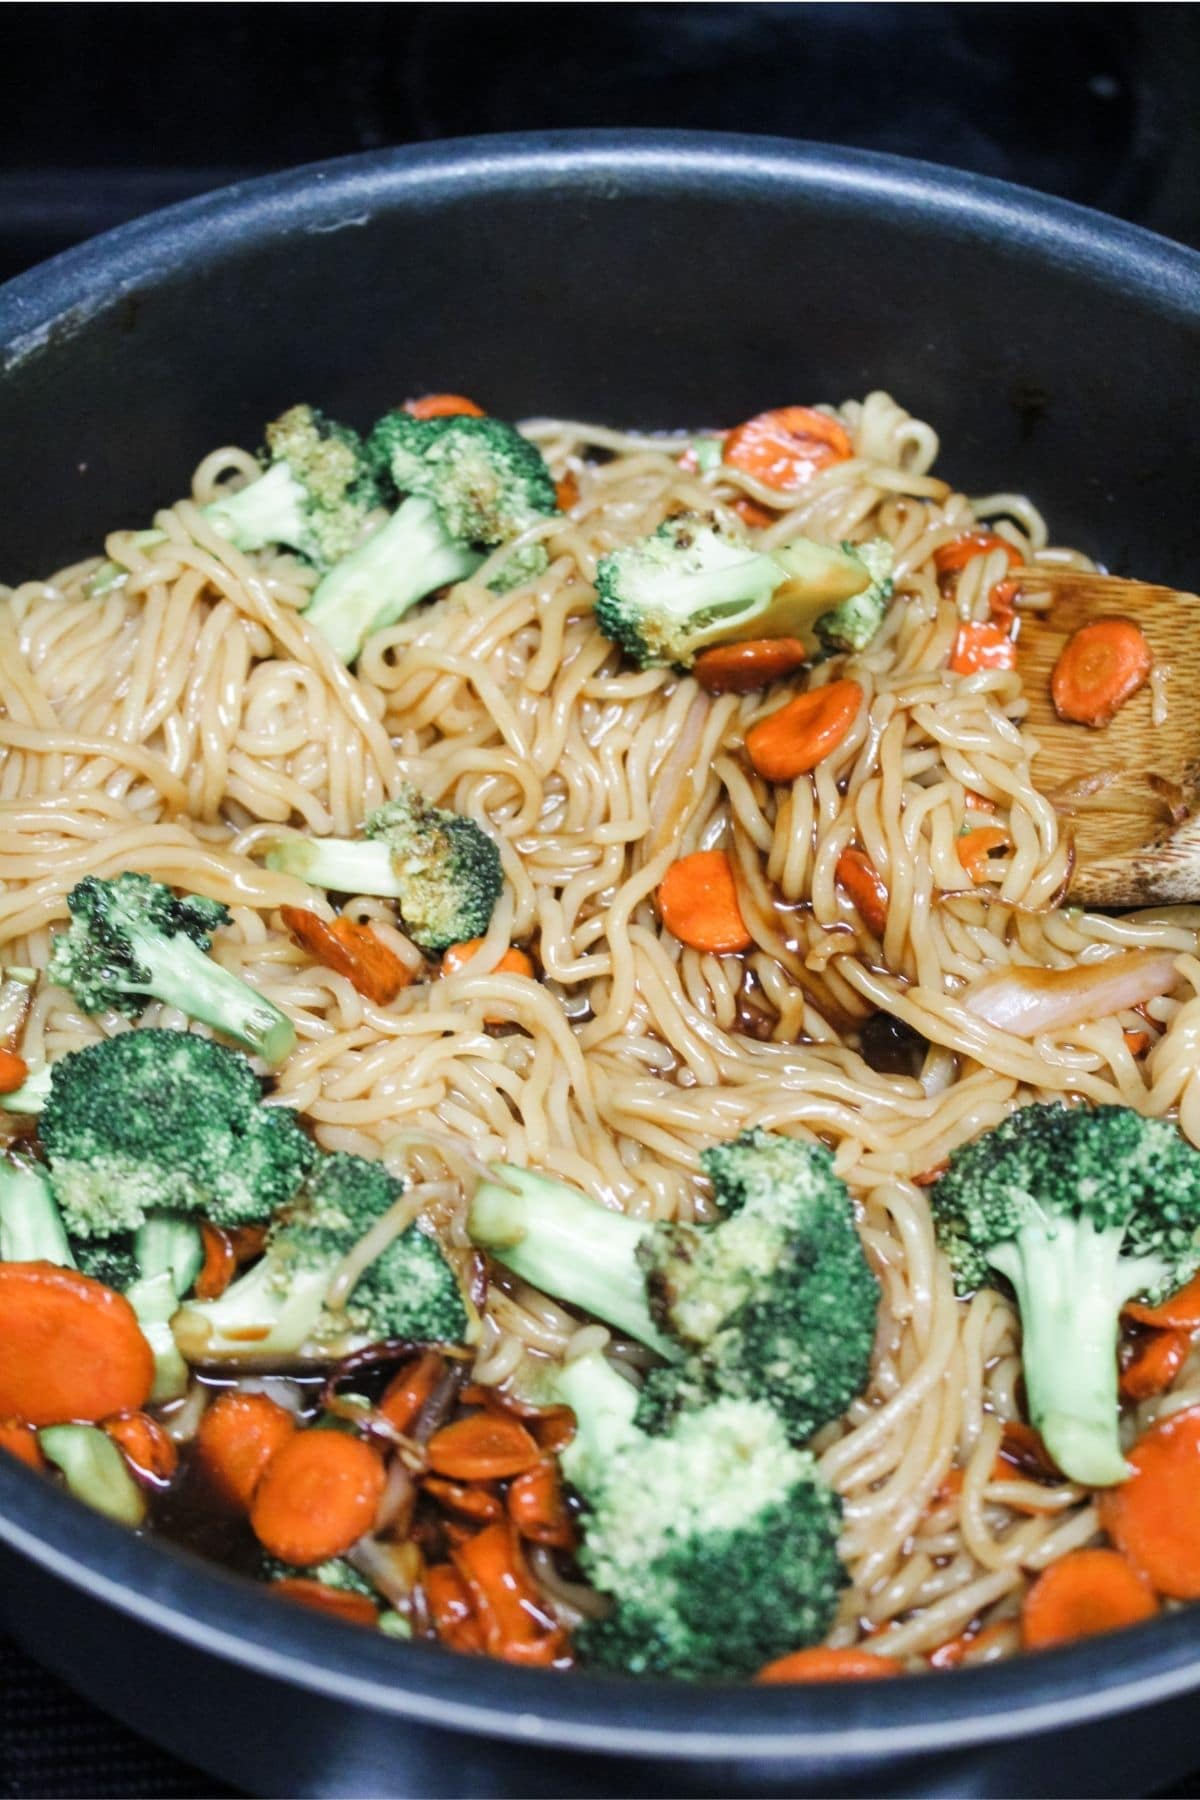 mixing together ramen noodles, broccoli, carrots, shallots, and Asian sauces over medium heat in a large pan